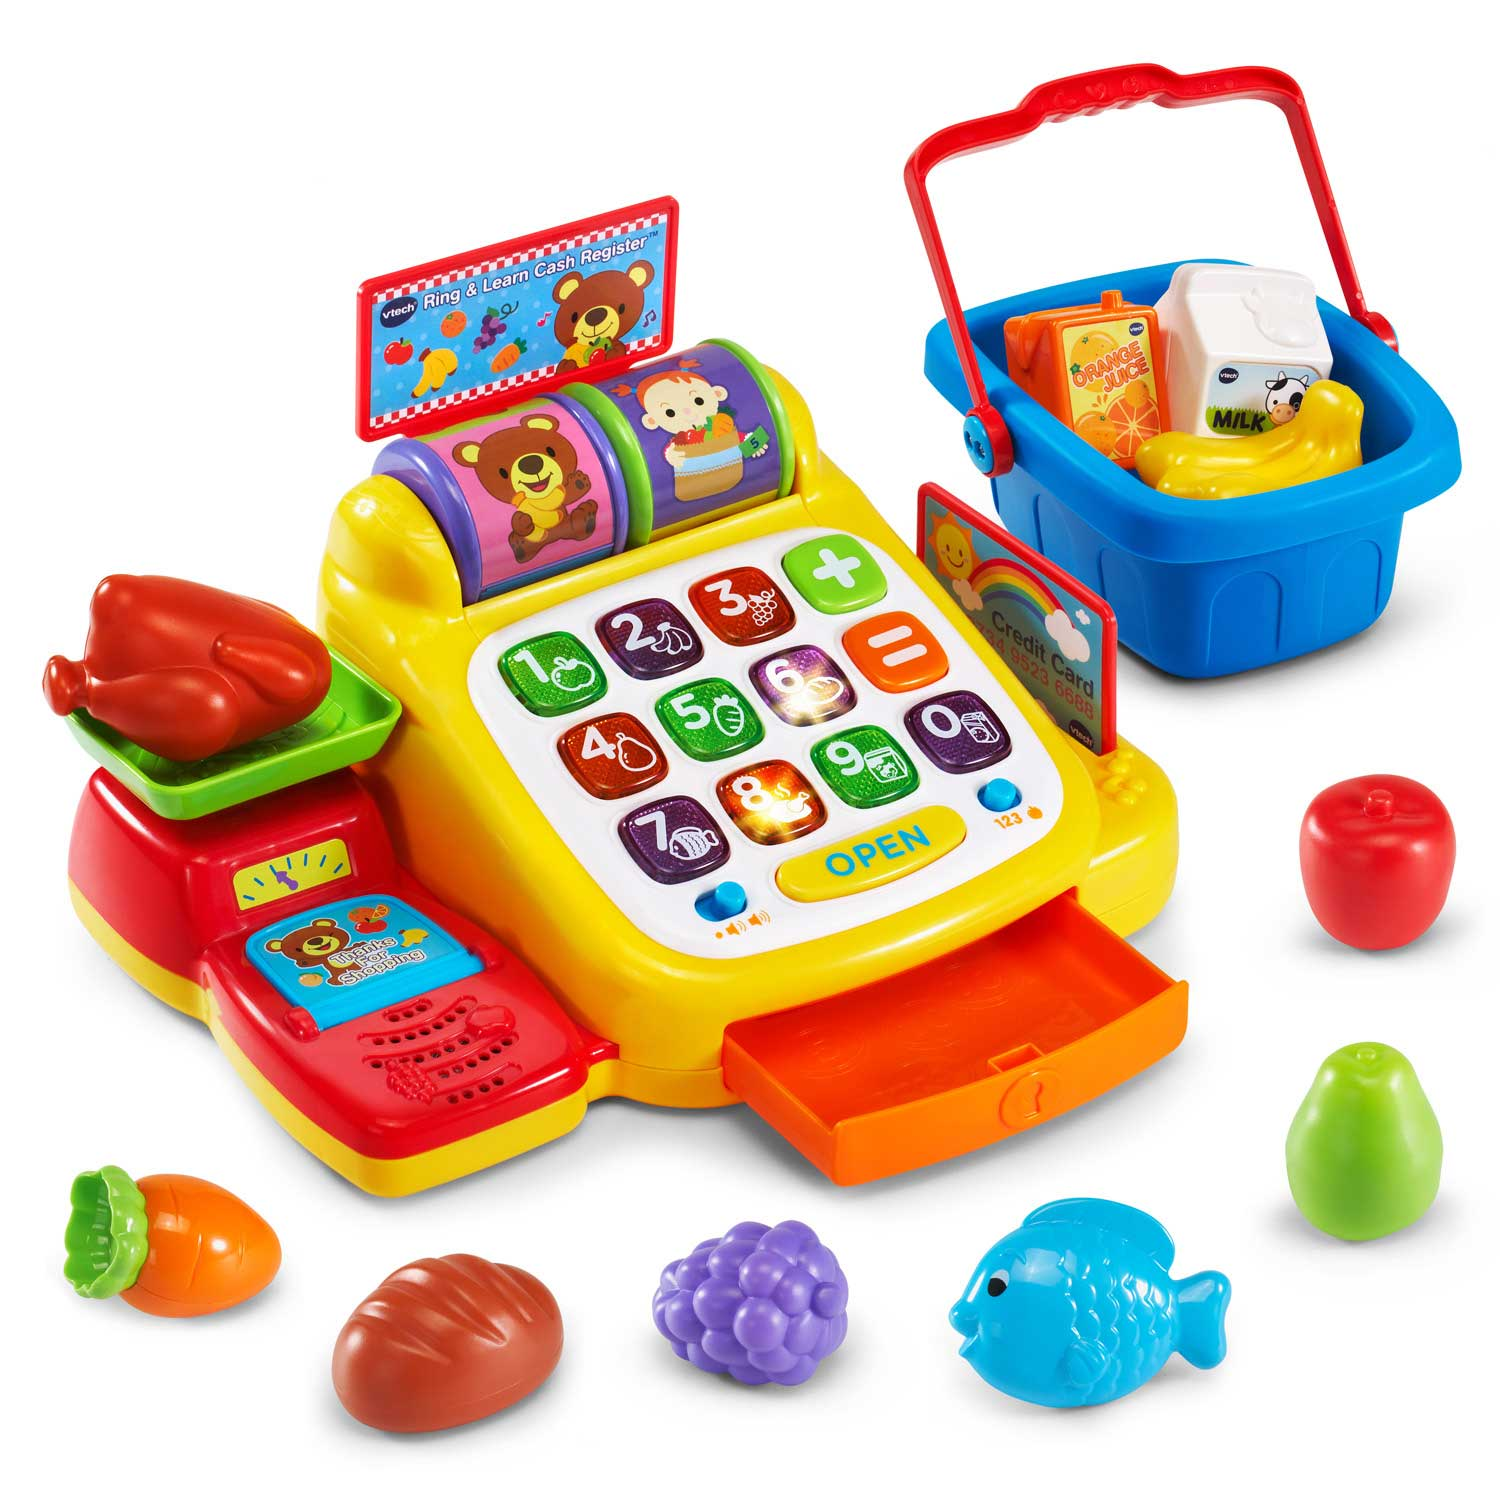 Toddler Toys Physical Toys : Vtech adds exciting new products to award winning baby